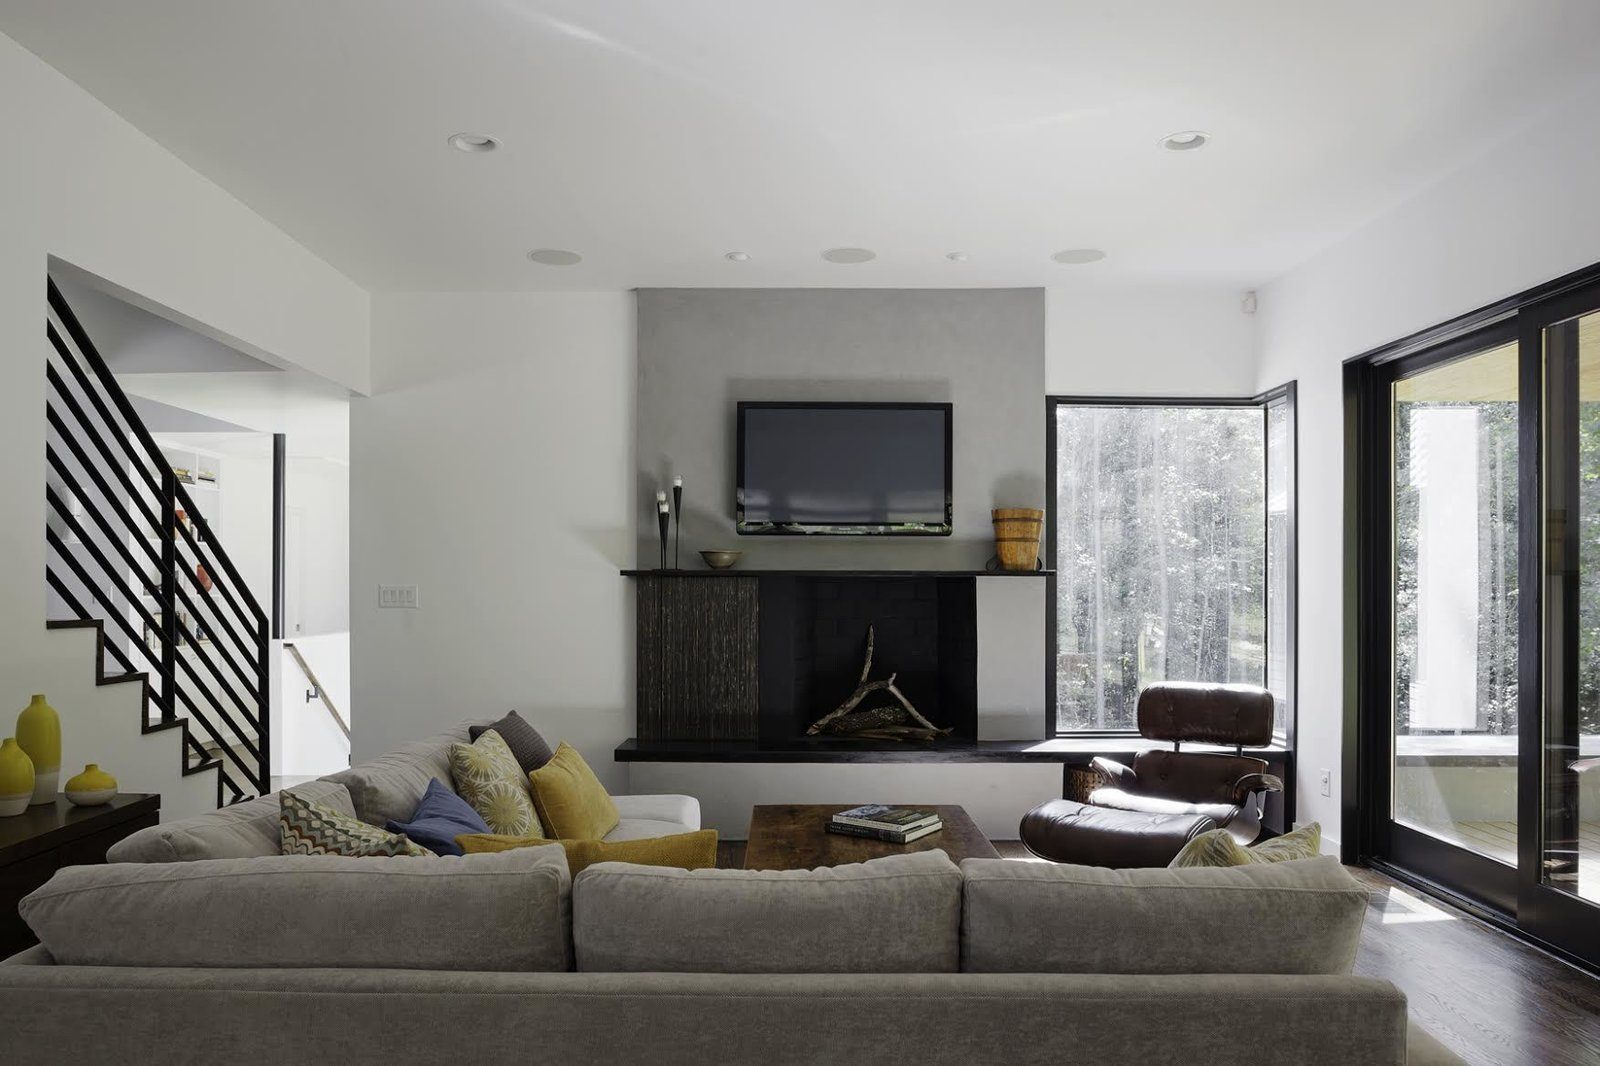 """""""We had to take into consideration that this young family was going to be living on a viable farm,"""" says interior designer Kris Ozburn of Second Mile Design. """"So, selecting furniture that was practical but had good design was a priority."""" Ozburn chose pieces like the sectional sofa from Precedent that felt timeless and modern."""